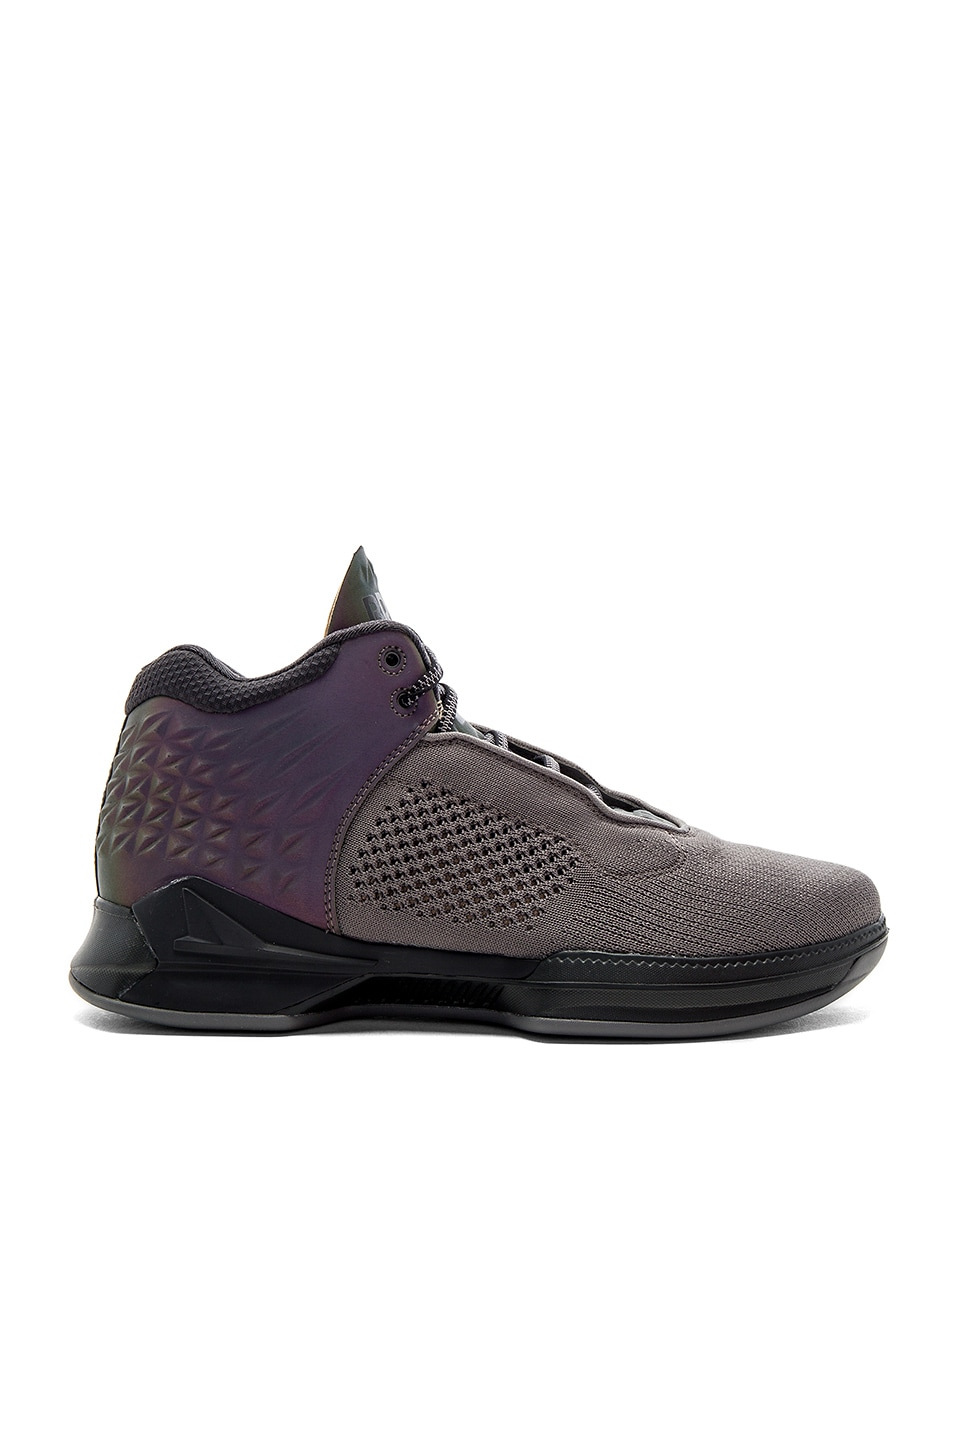 x REVOLVE J Crossover 2 Northern Lights by Brandblack